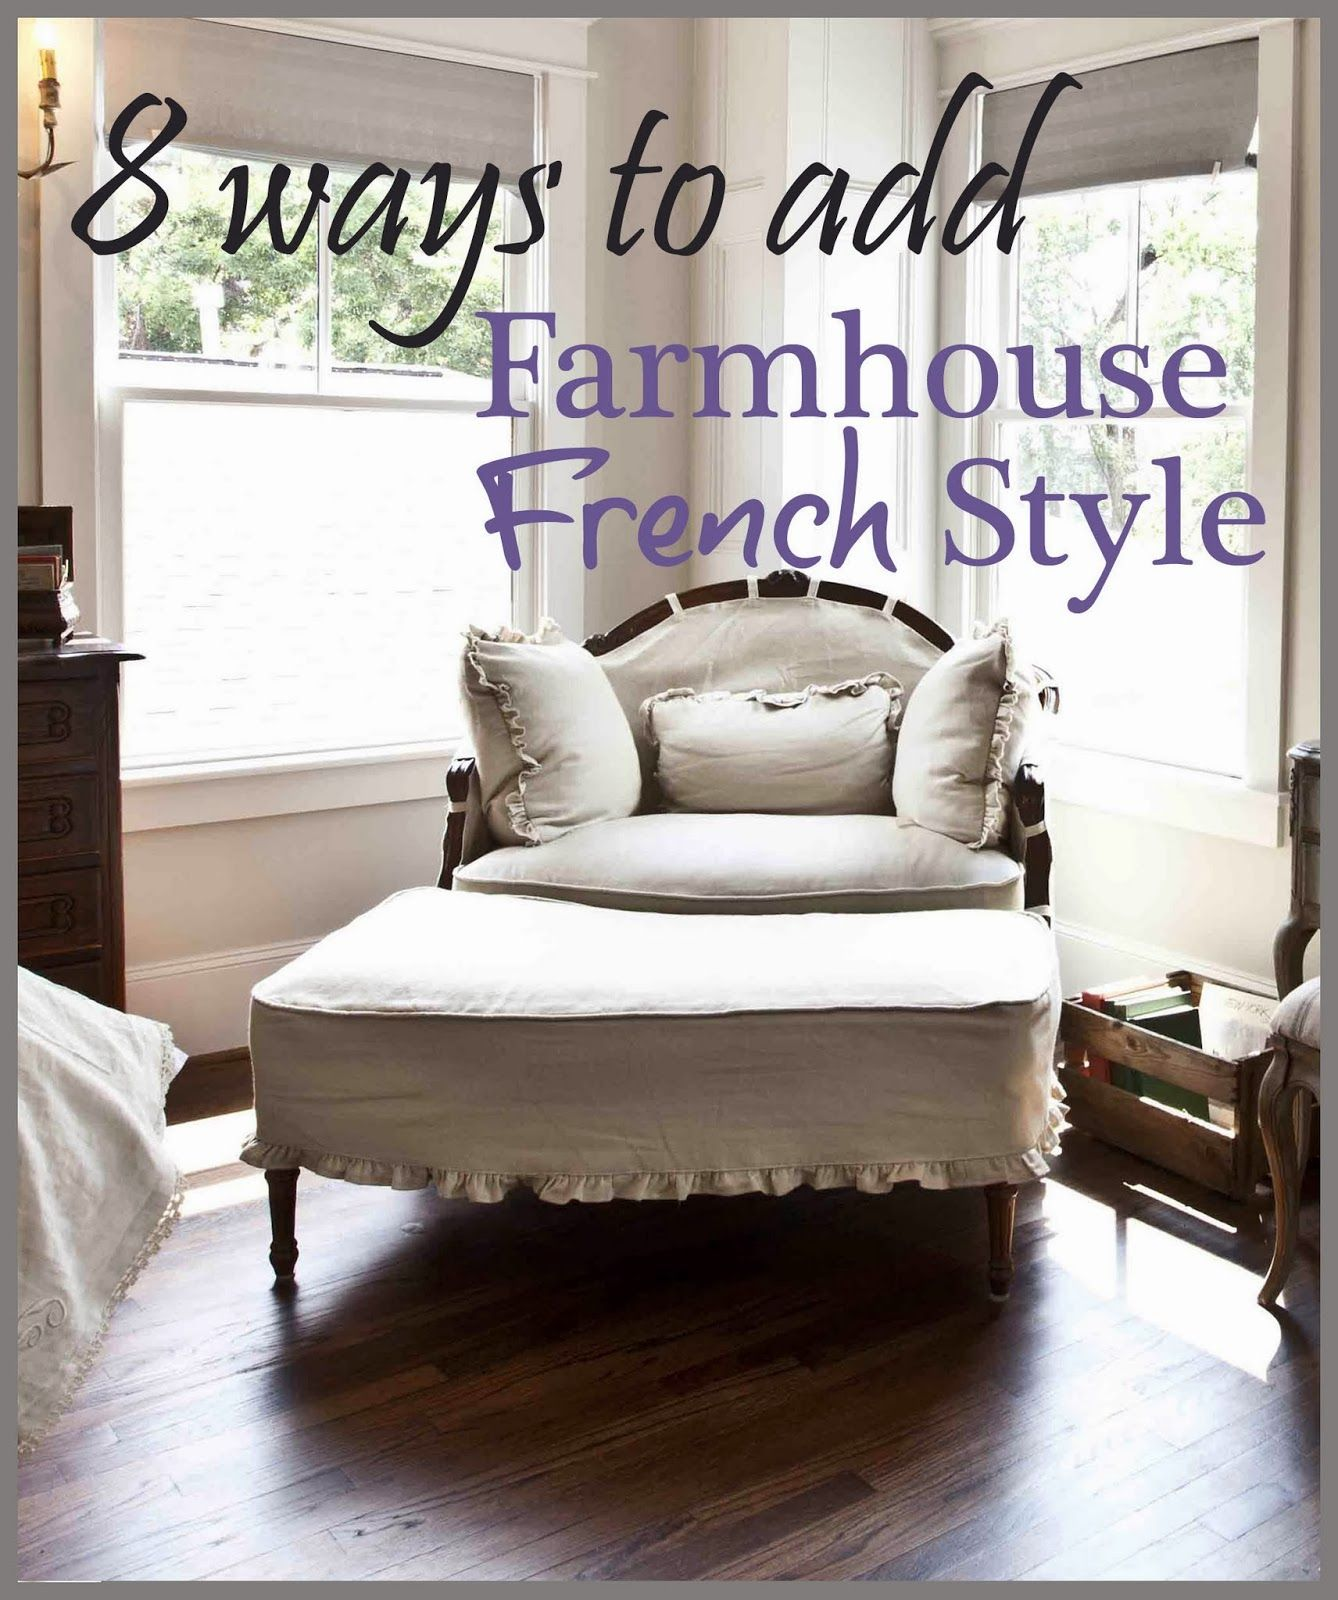 8 Budgetfriendly Ways to add Farmhouse French to Your